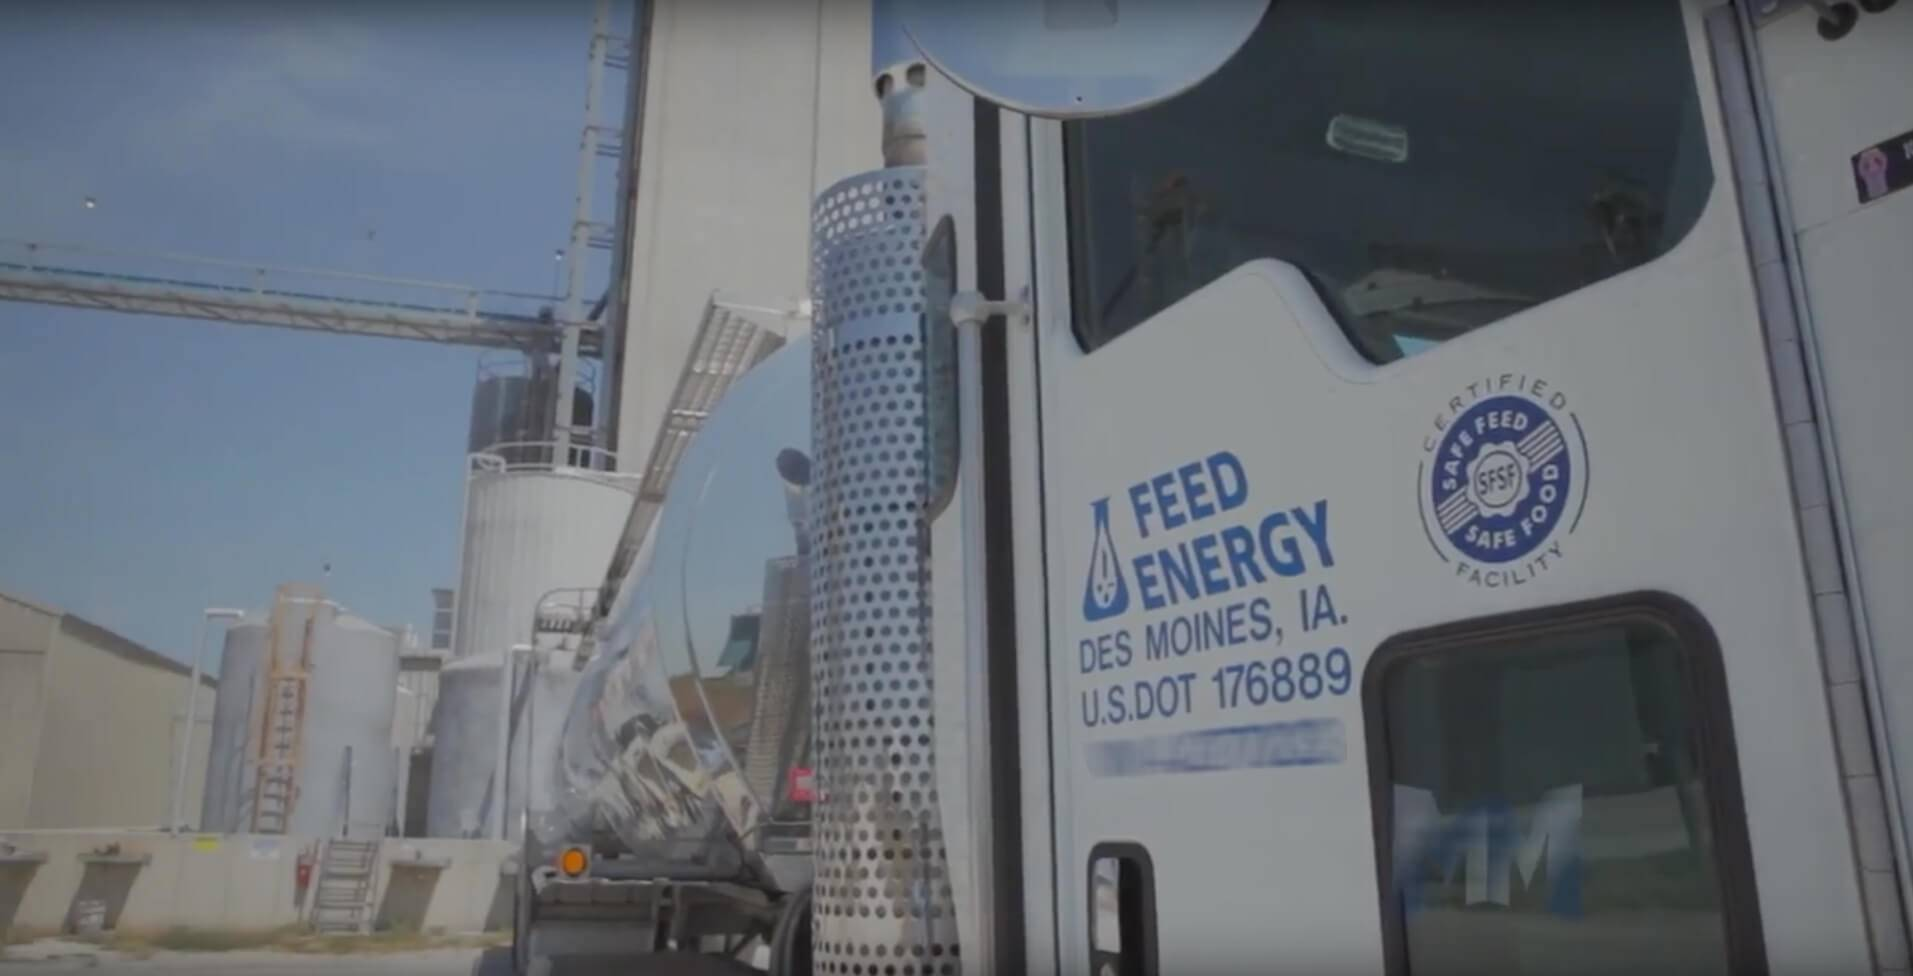 A door of a Feed Energy Truck.